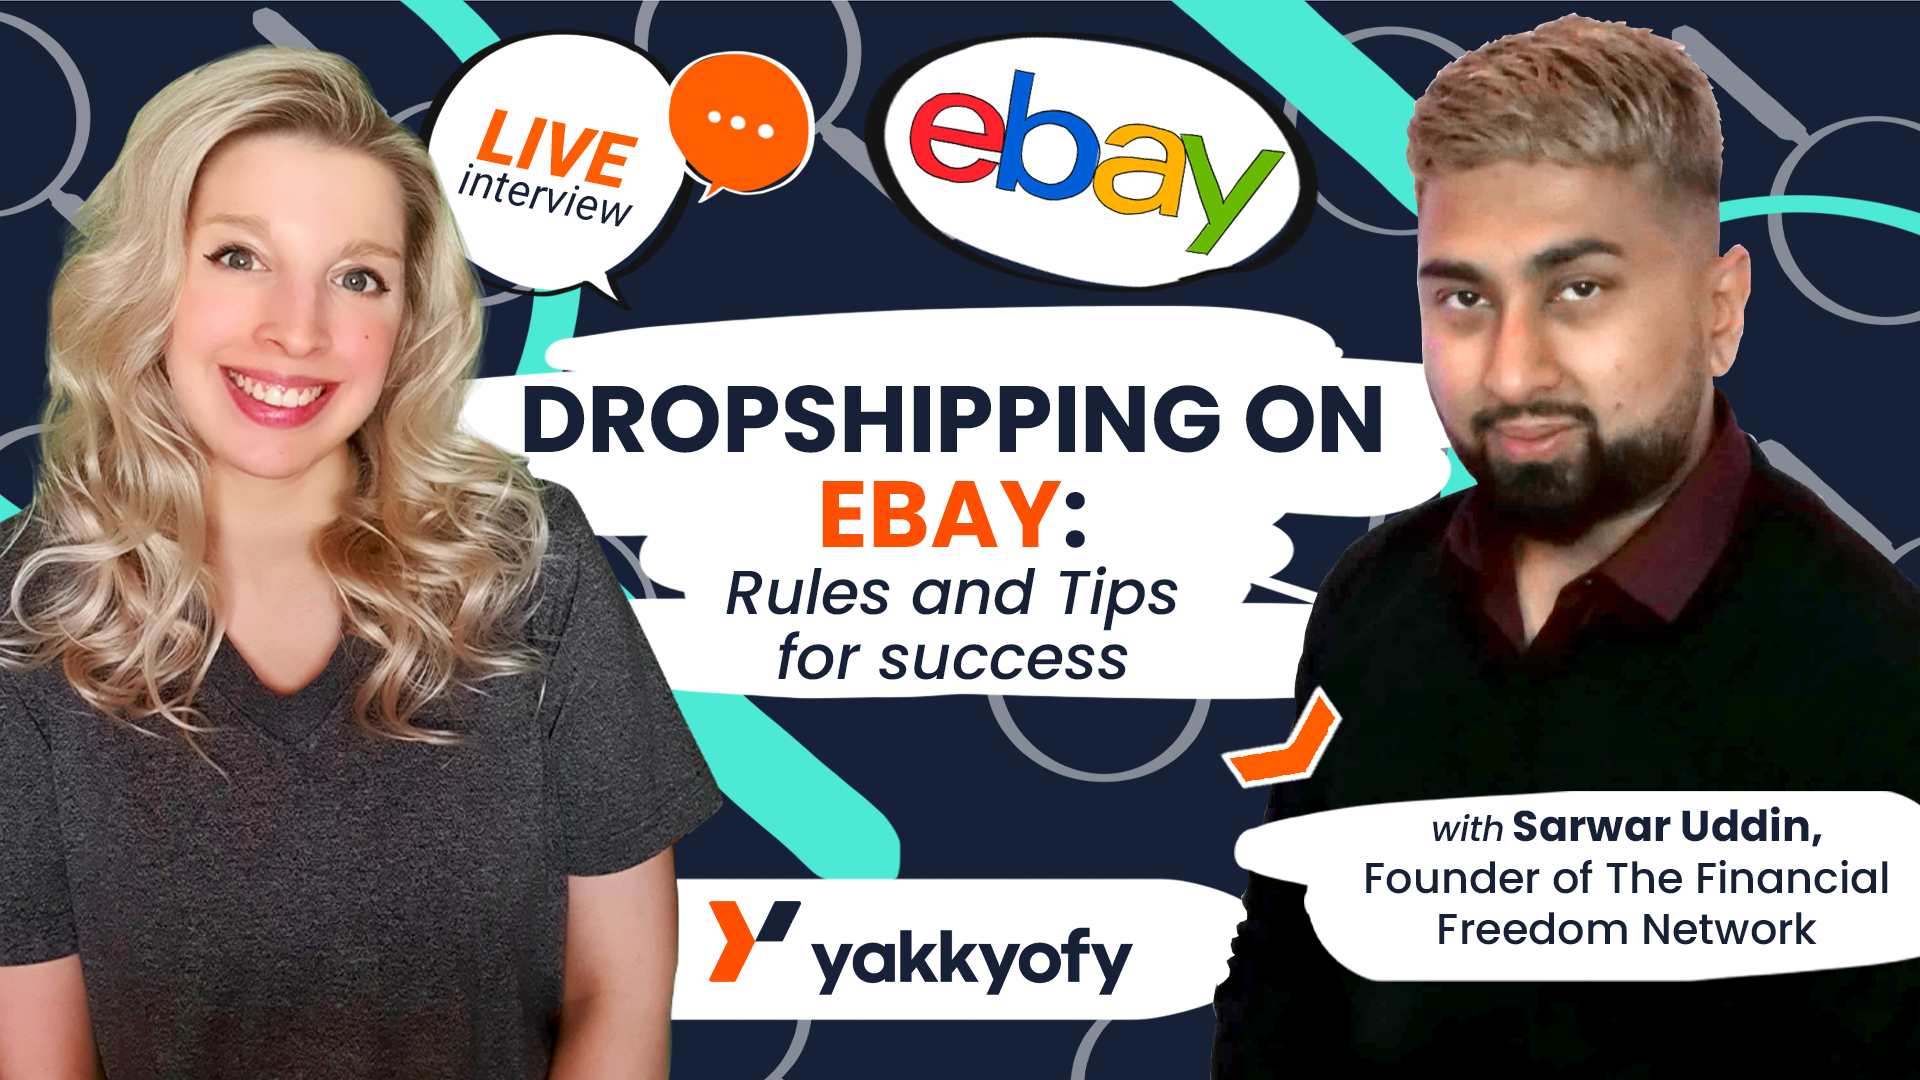 Dropshipping with eBay: terms and tips for riches – LIVE with Sarwar Uddin